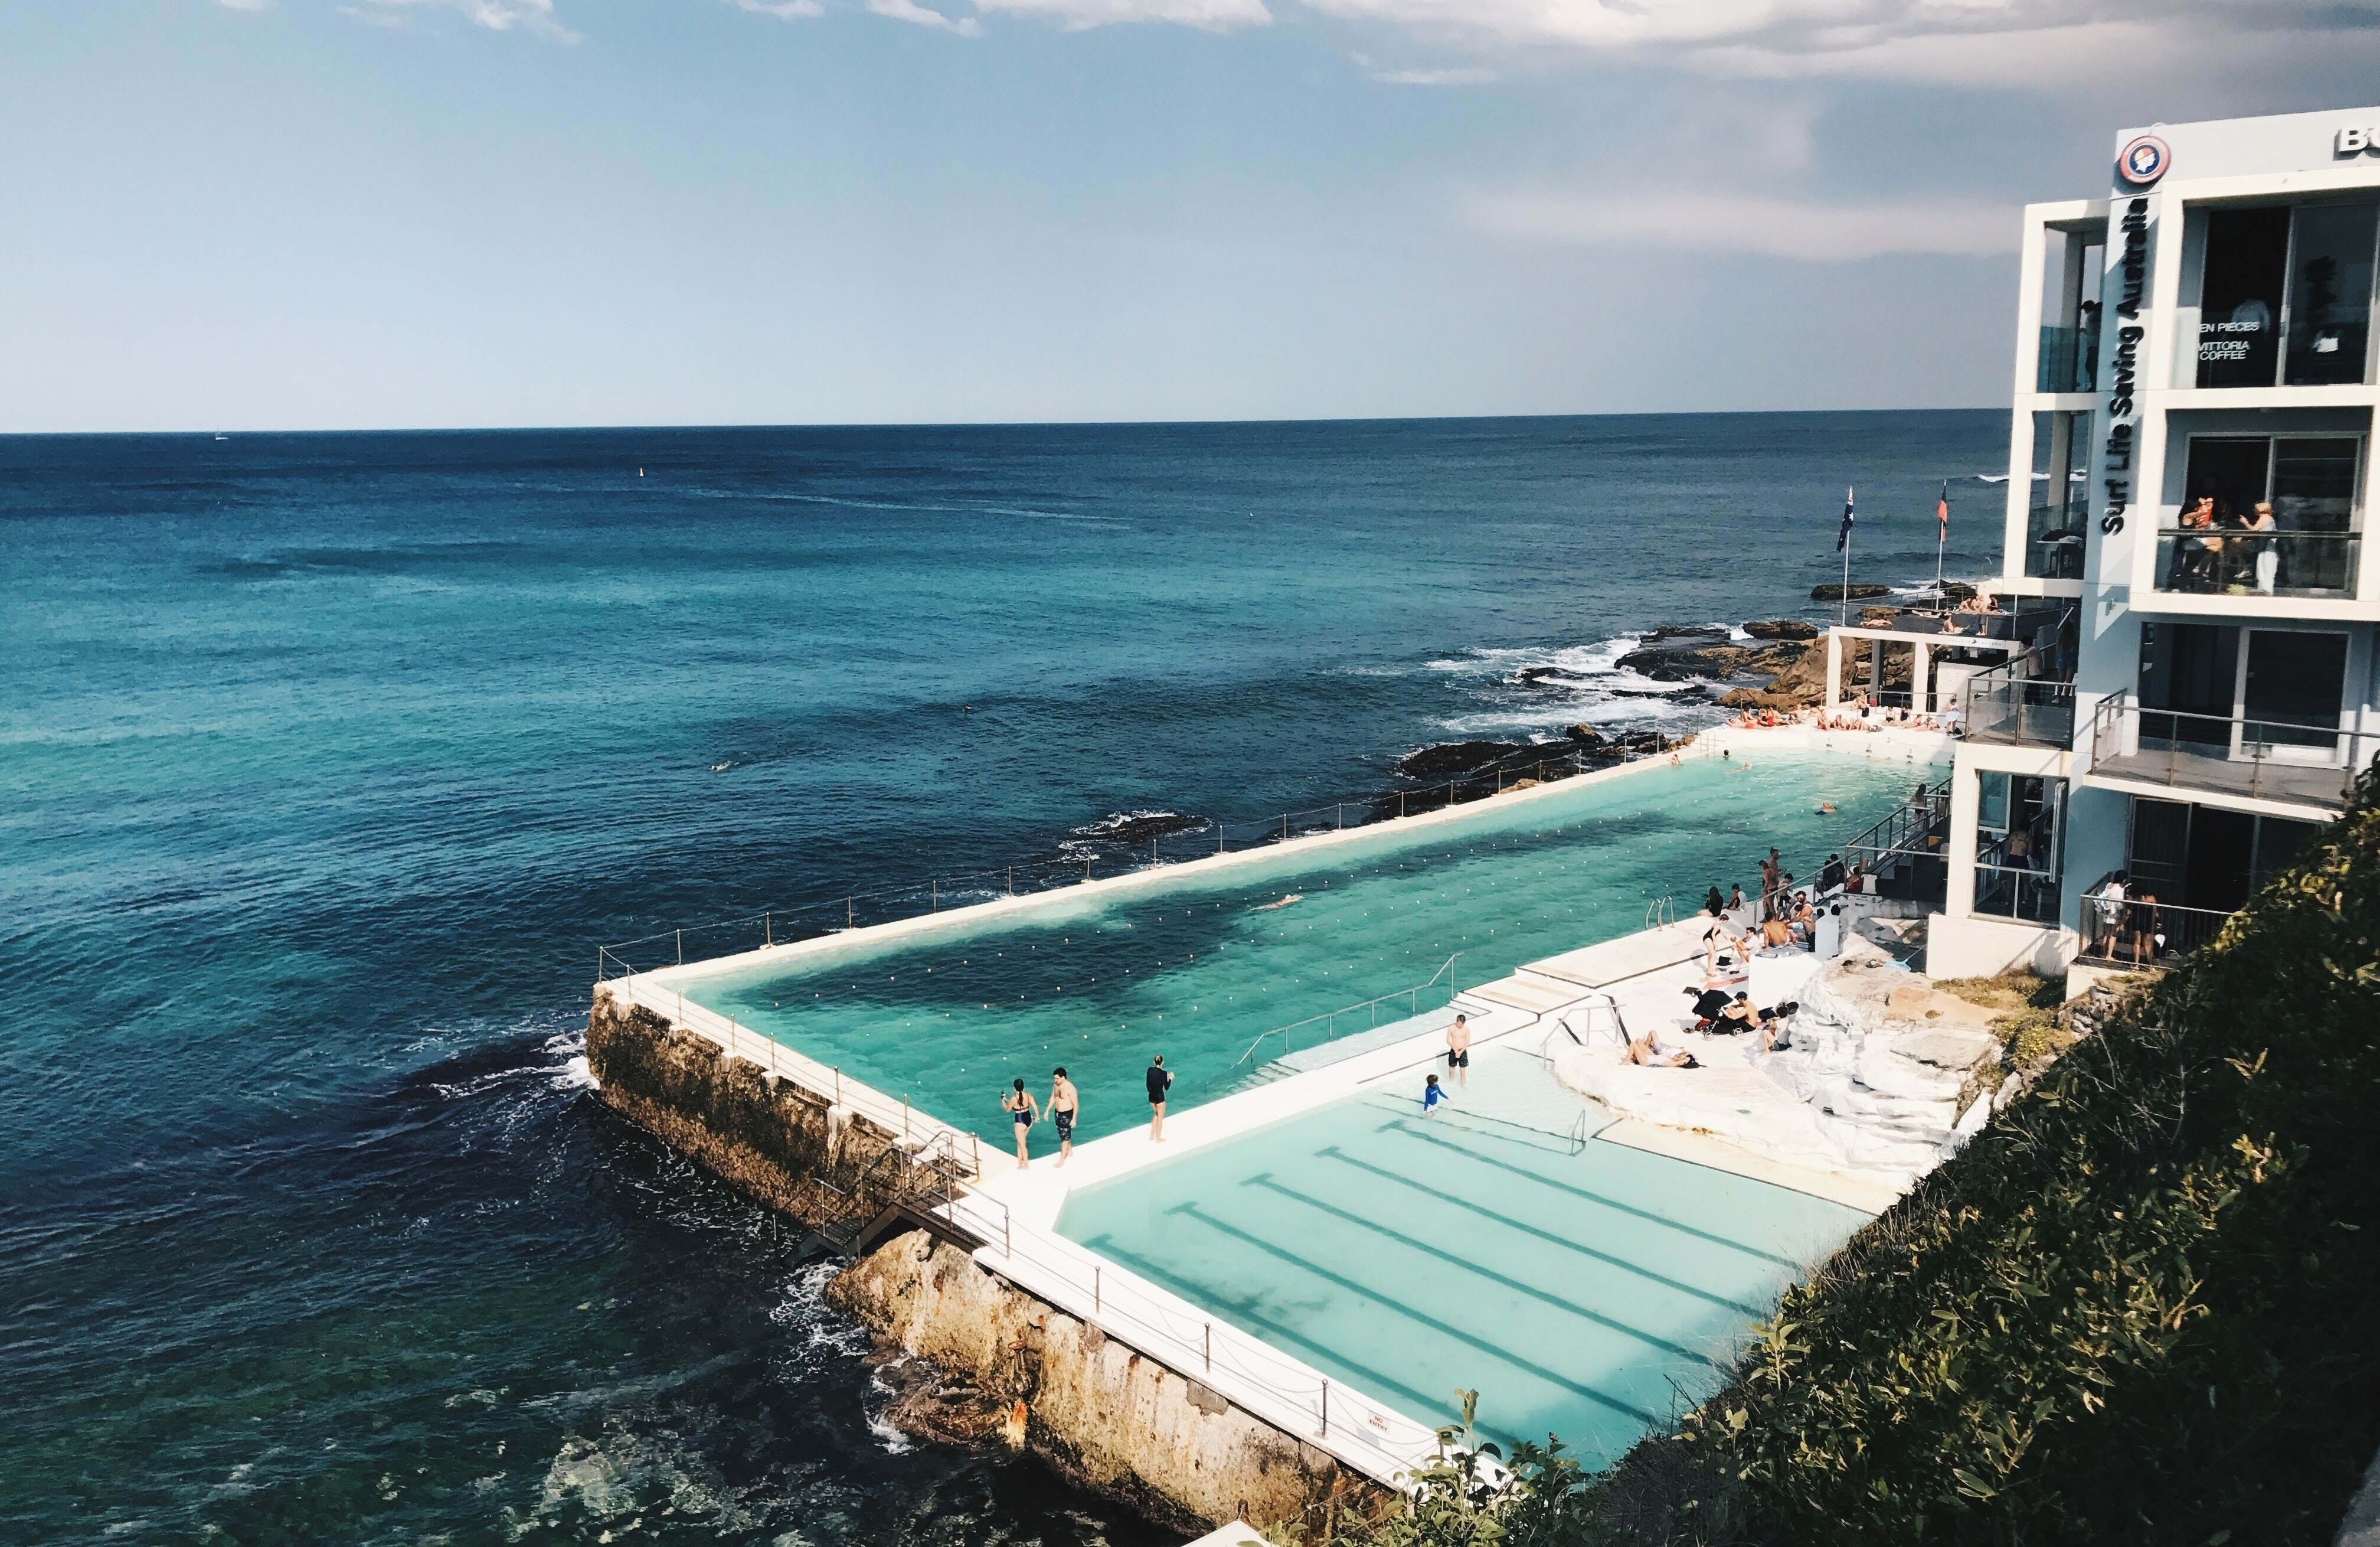 visit the outdoor pool during your studies in sydney